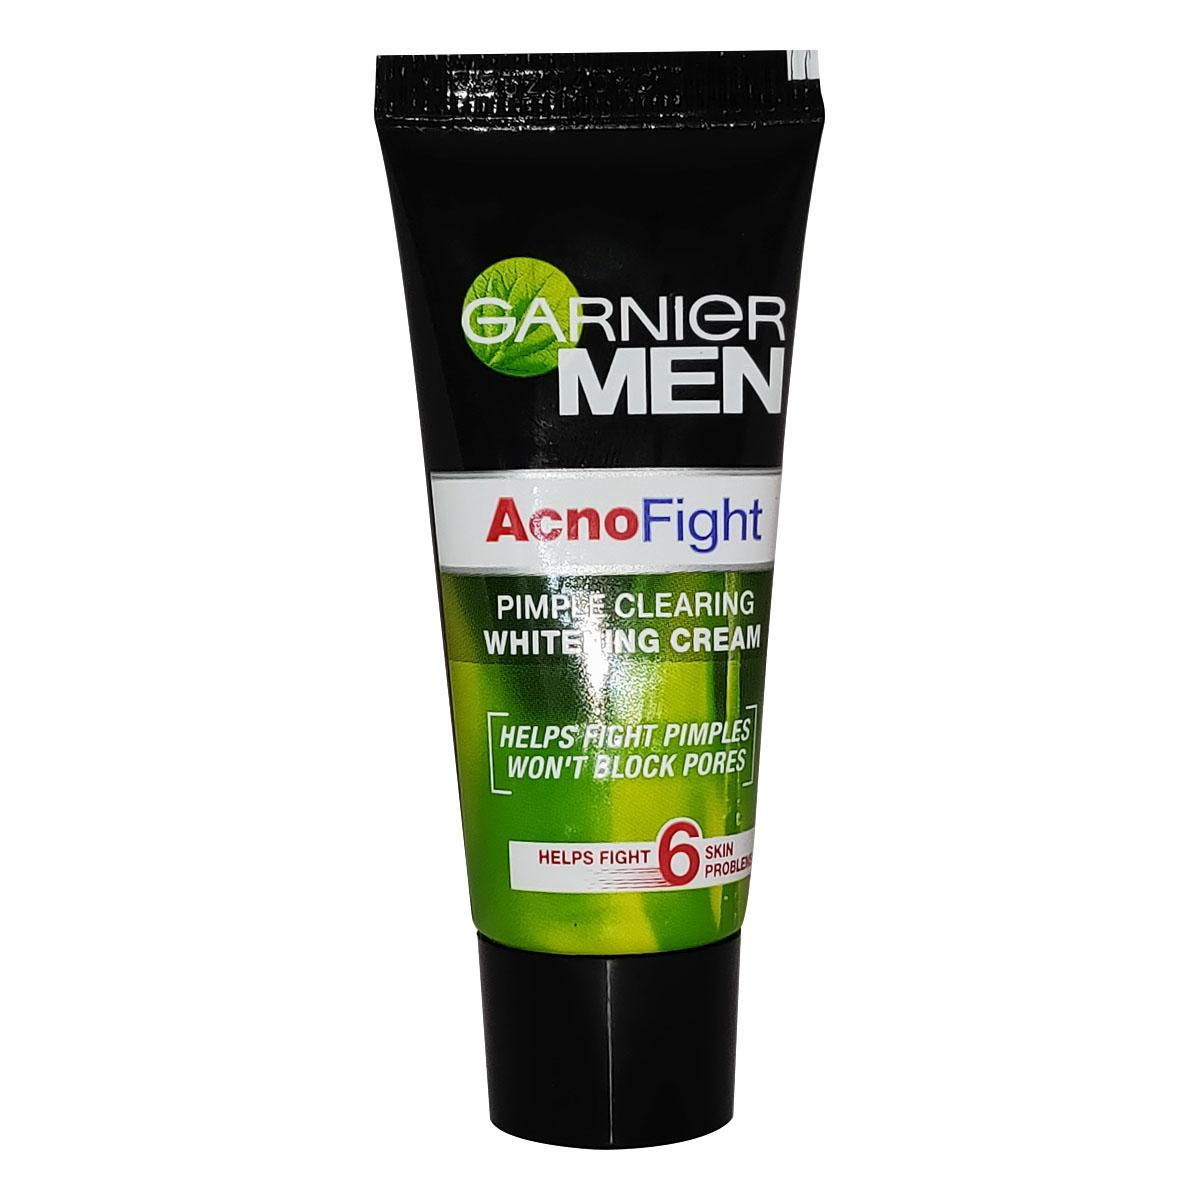 Buy Skin Care Products Online At Best Price Garnier Light Complete Day Cream 20 Gr Men Acnofight Pimple Clearing Whitening 45g